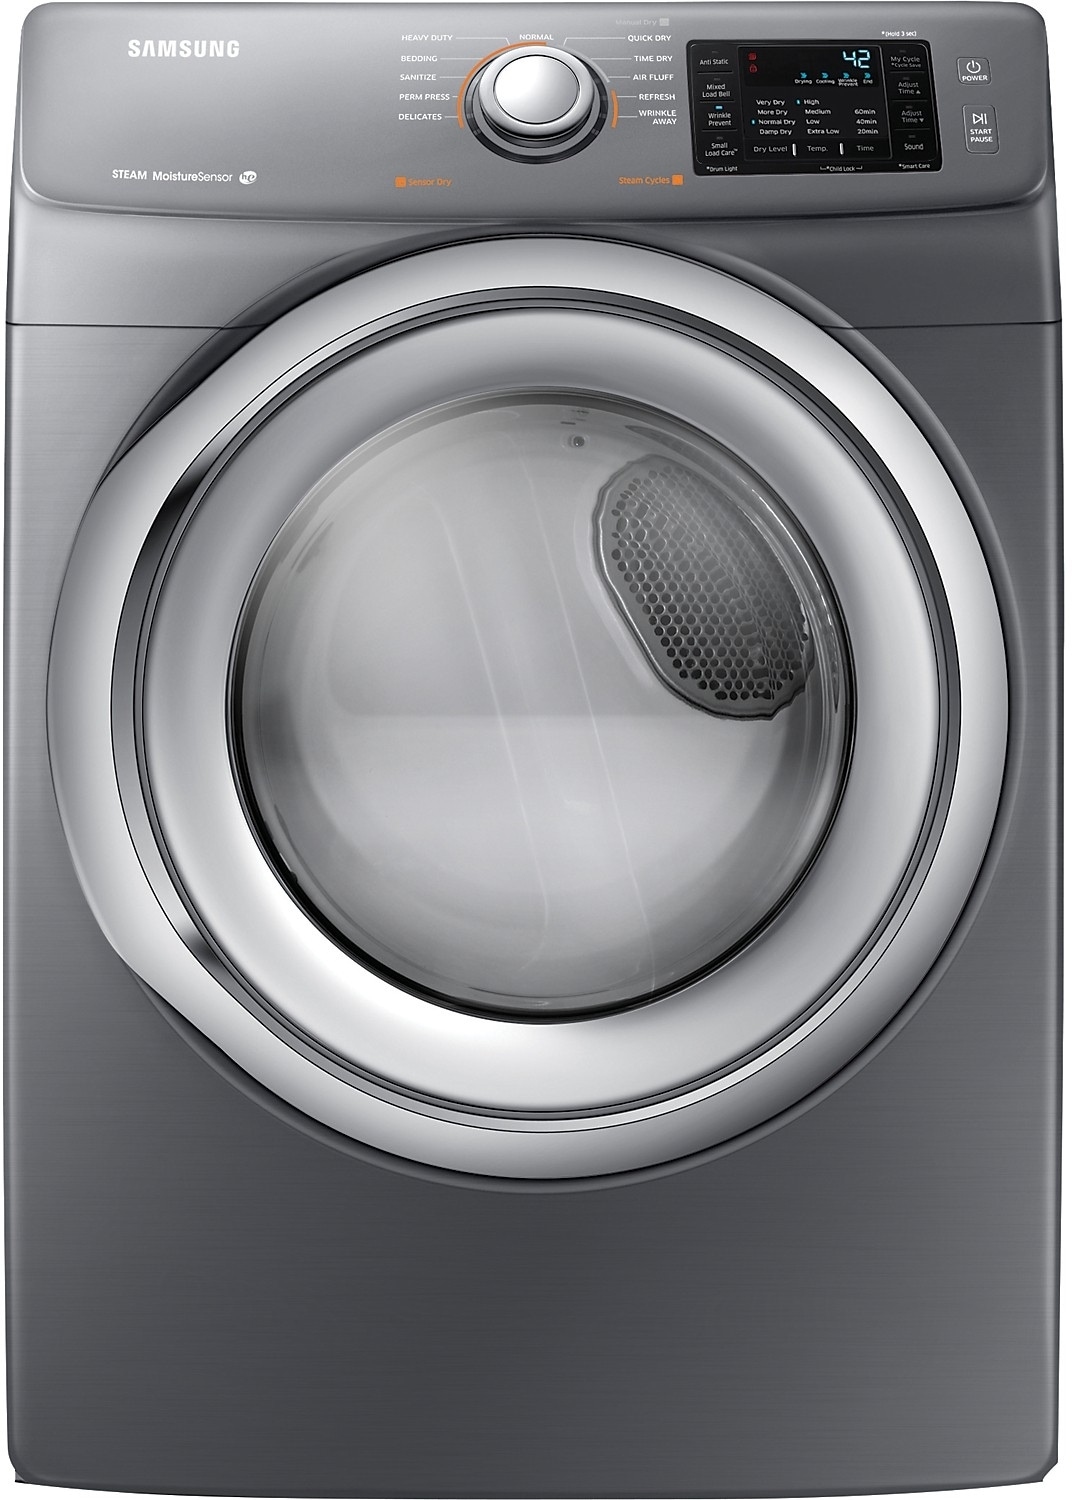 Washers and Dryers - Samsung 7.5 Cu. Ft. Electric Dryer - Platinum